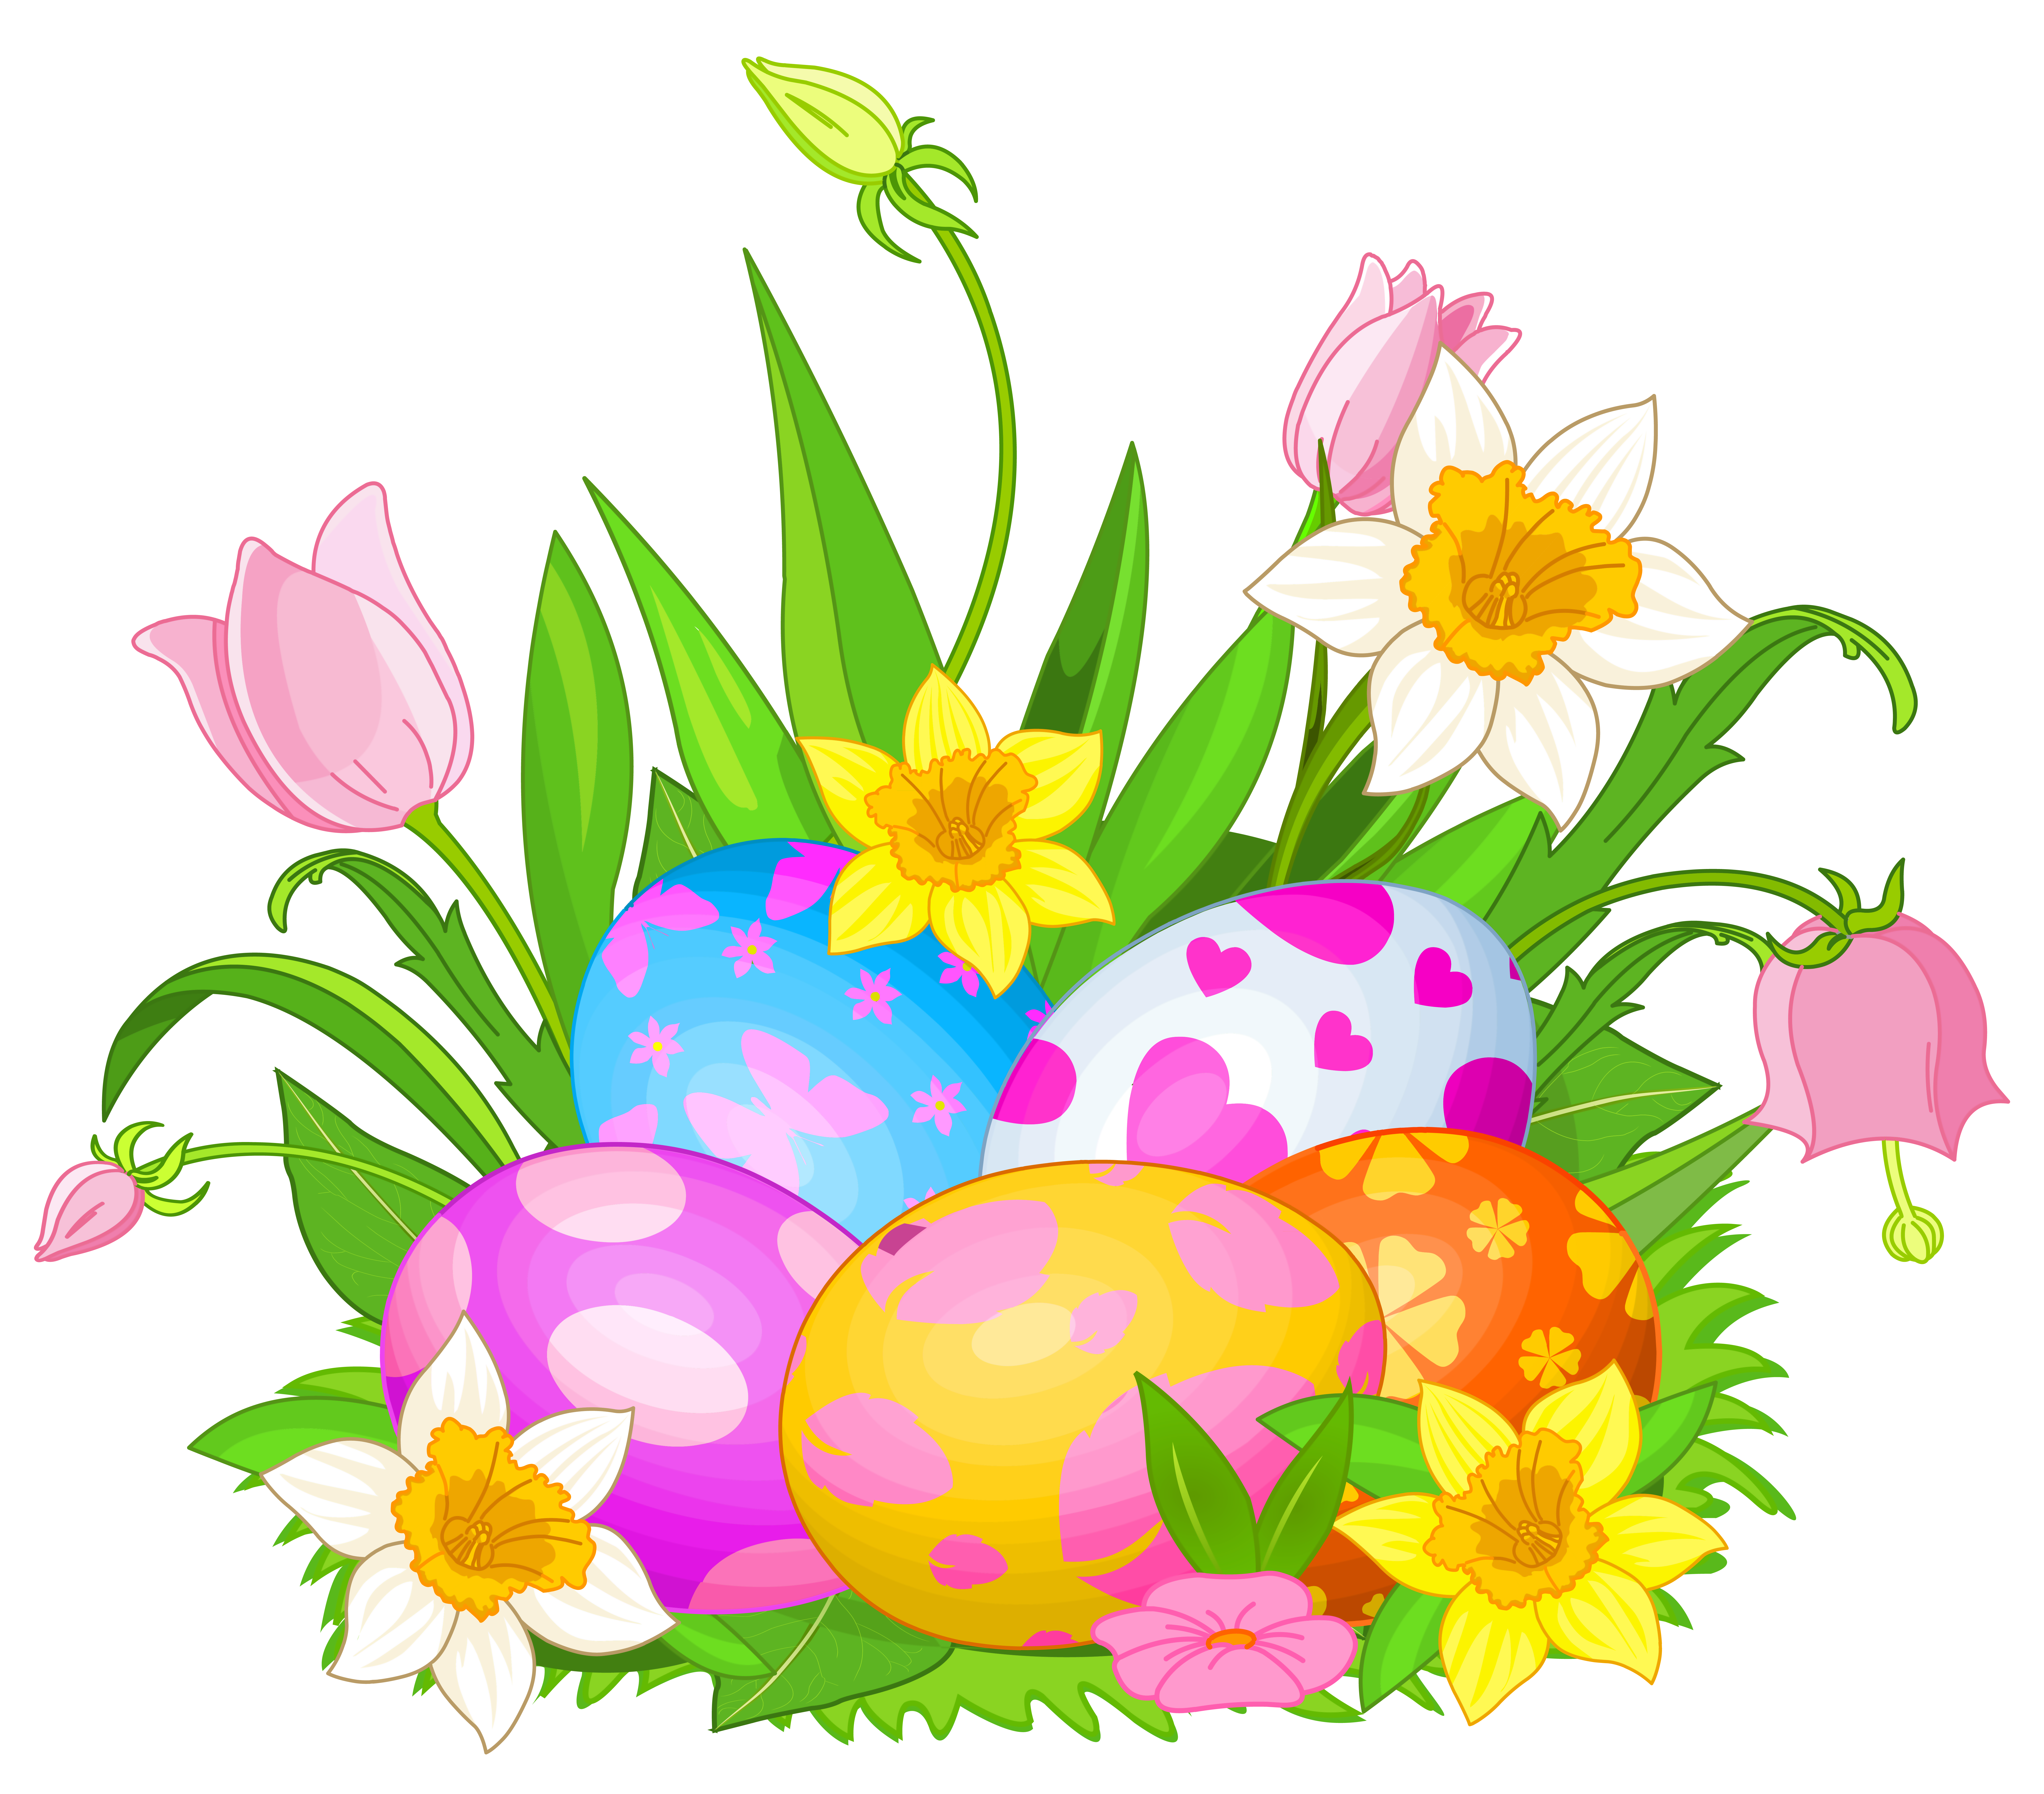 Duckling clipart easter. Eggs and flowers png